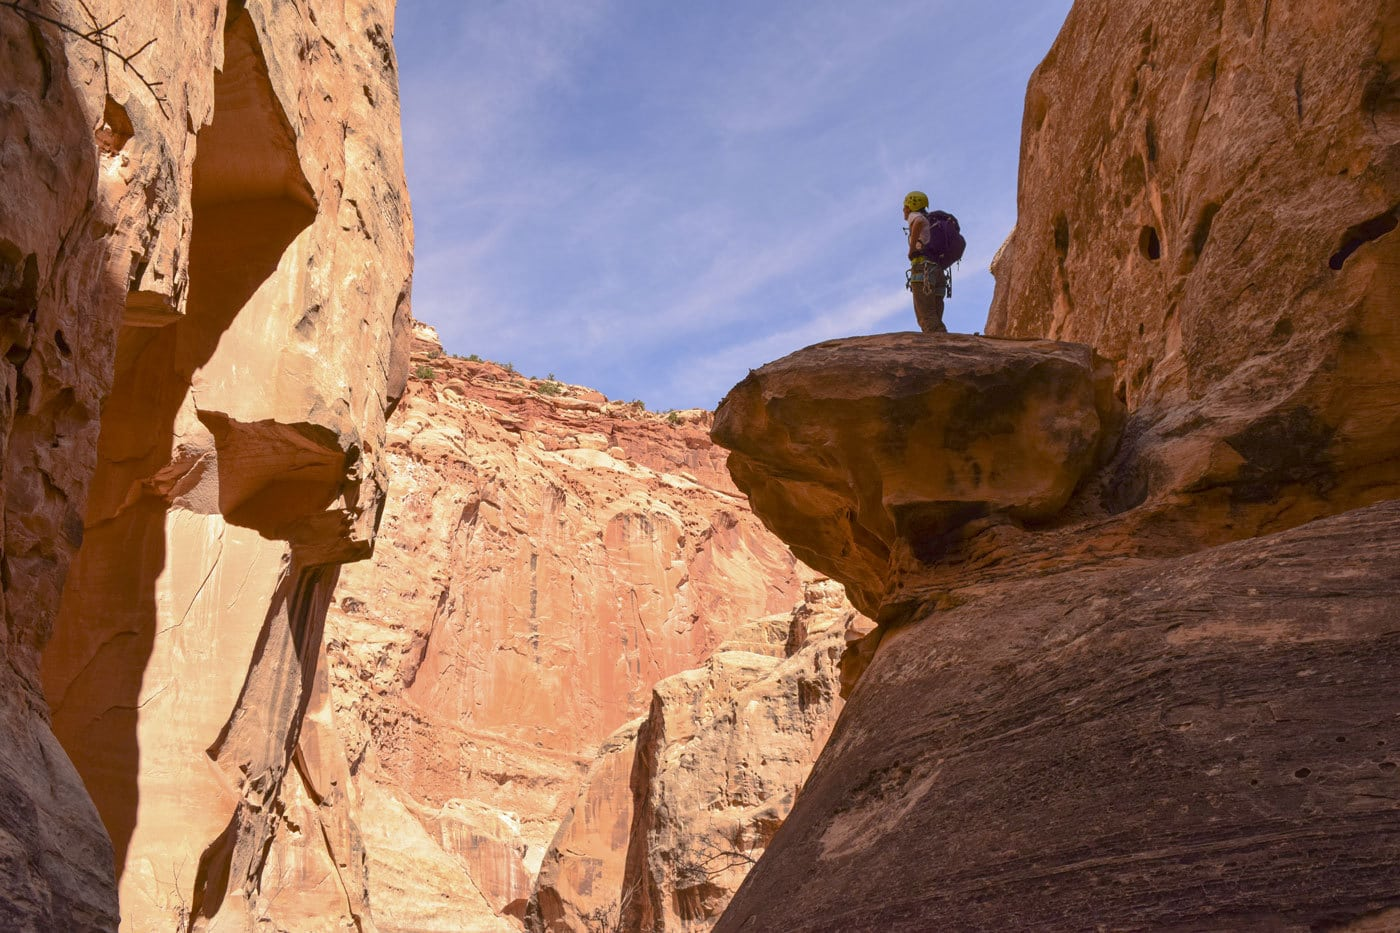 A person stands on a ledge in Cassidy Arch Canyon in Capitol Reef National Park.